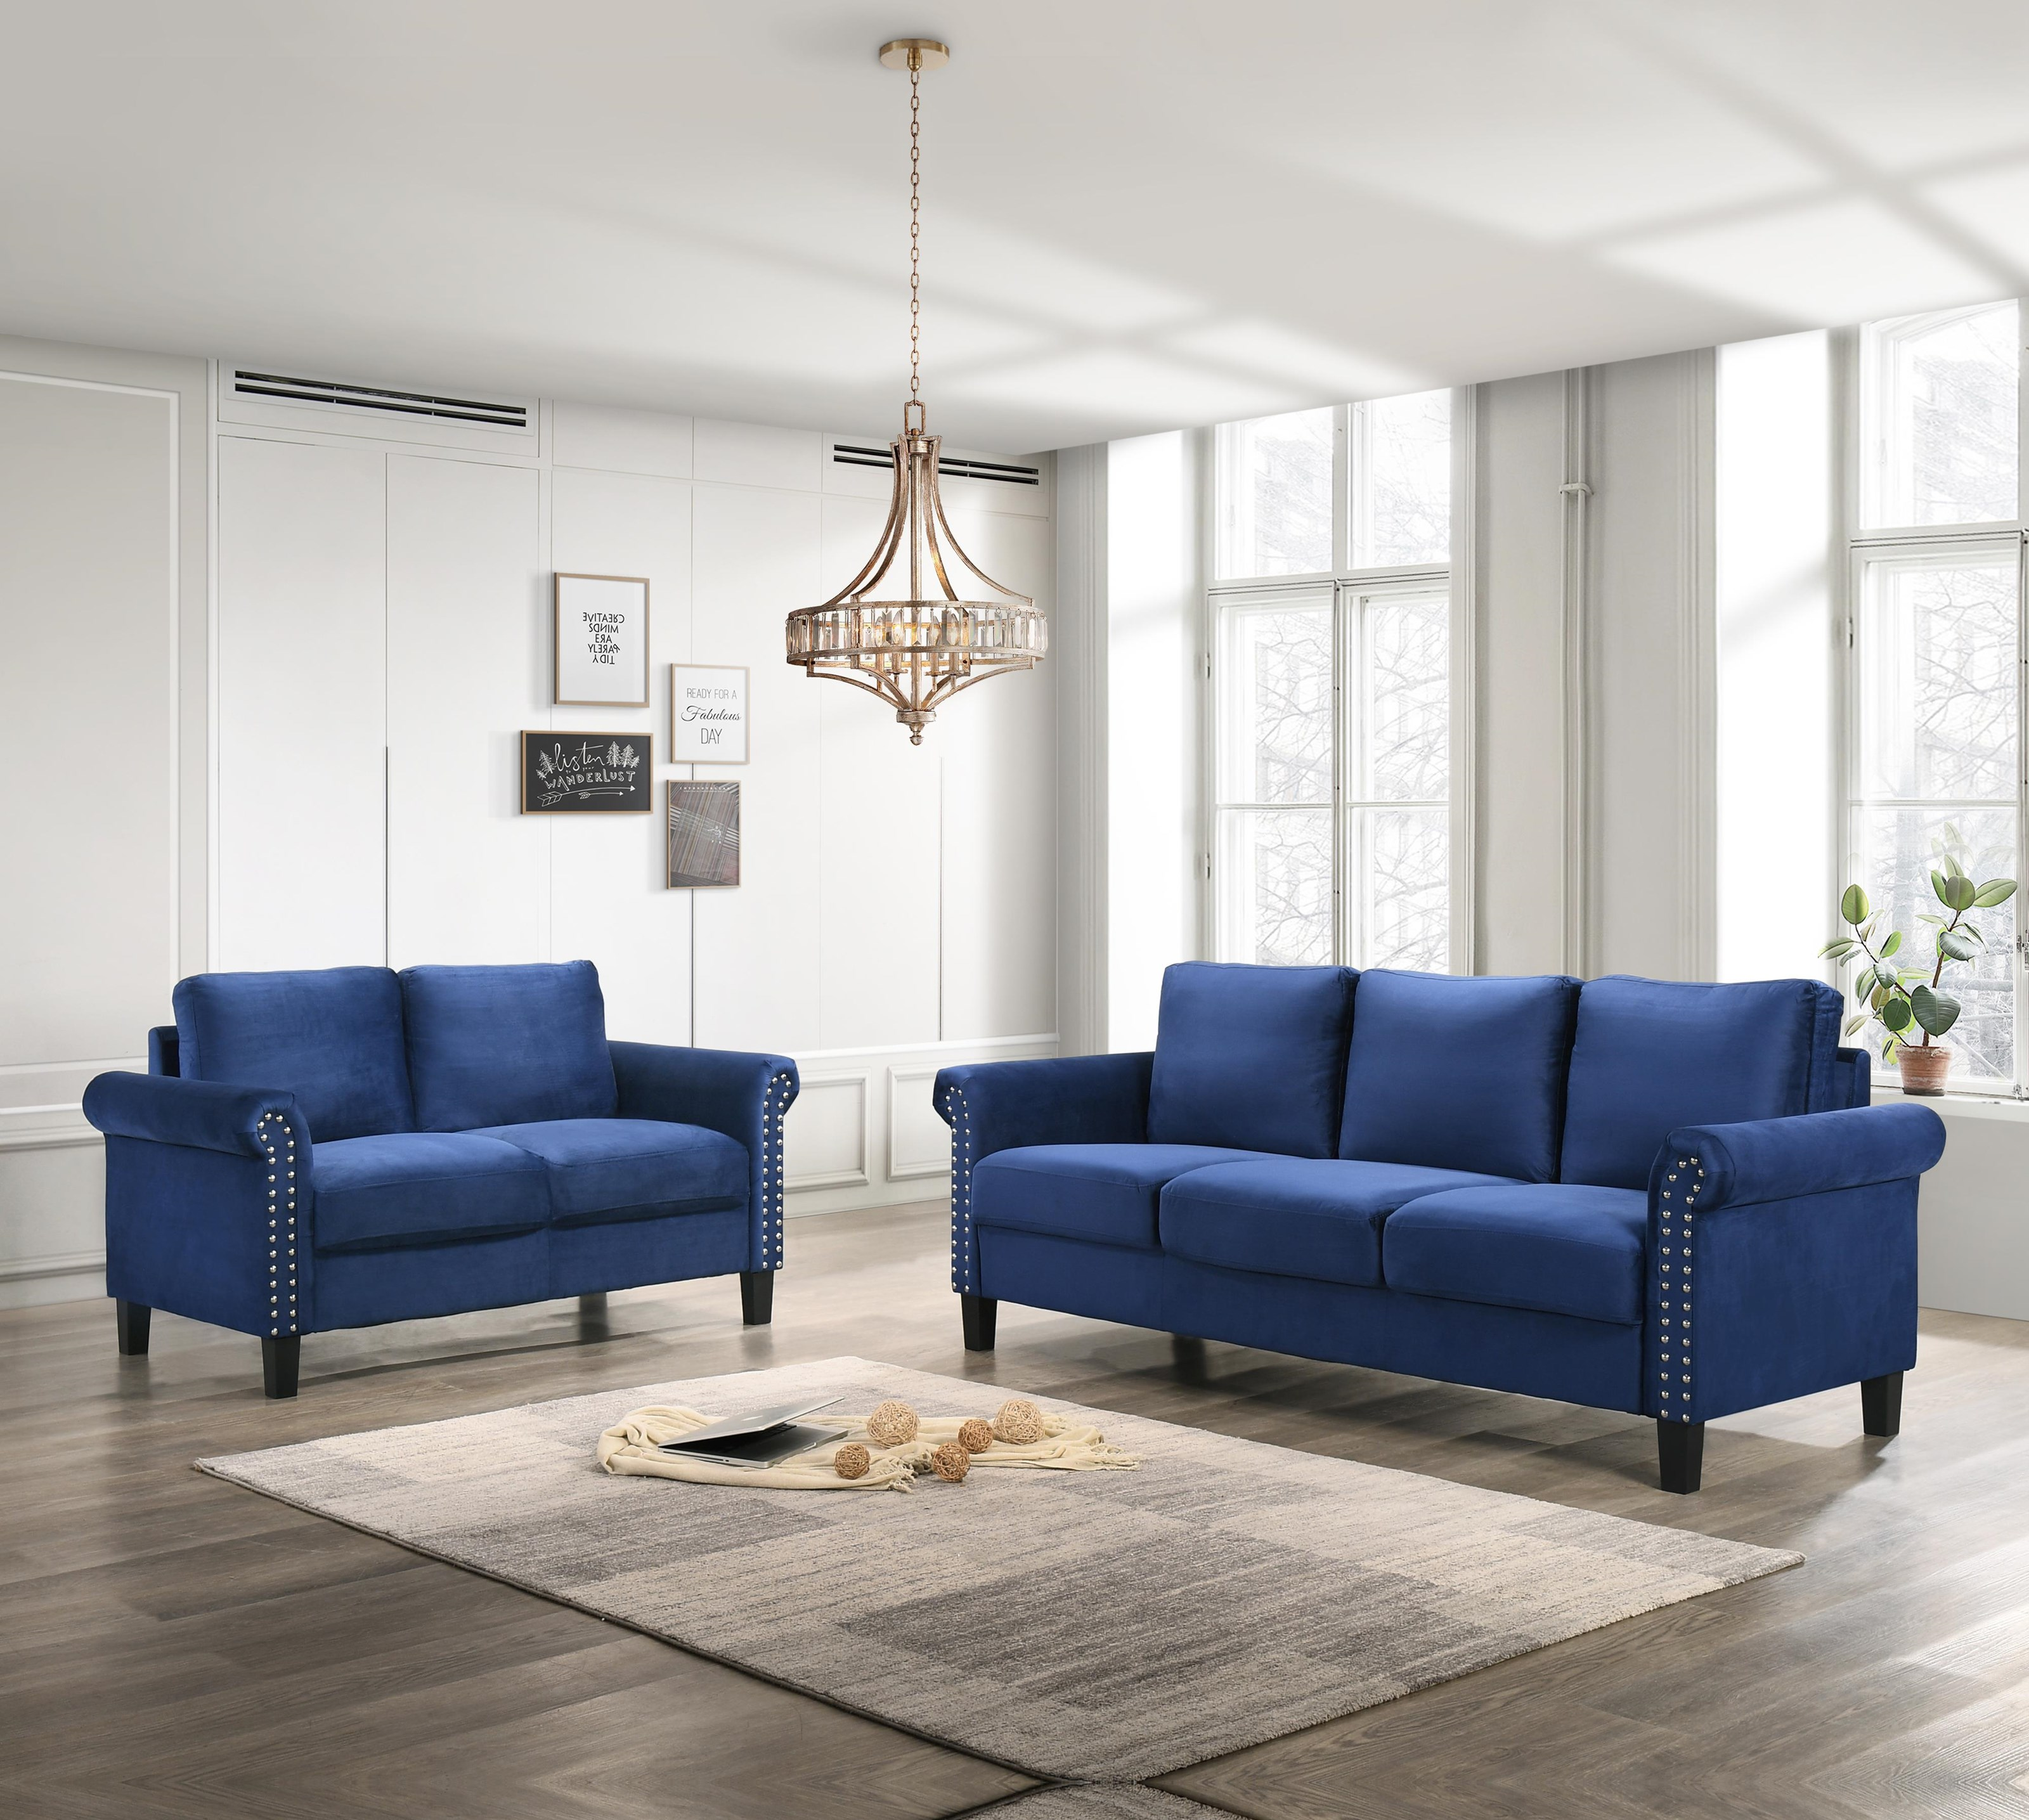 Alani Blue Nailhead Sofa and Loveseat Set by New Classic at Sam Levitz Outlet